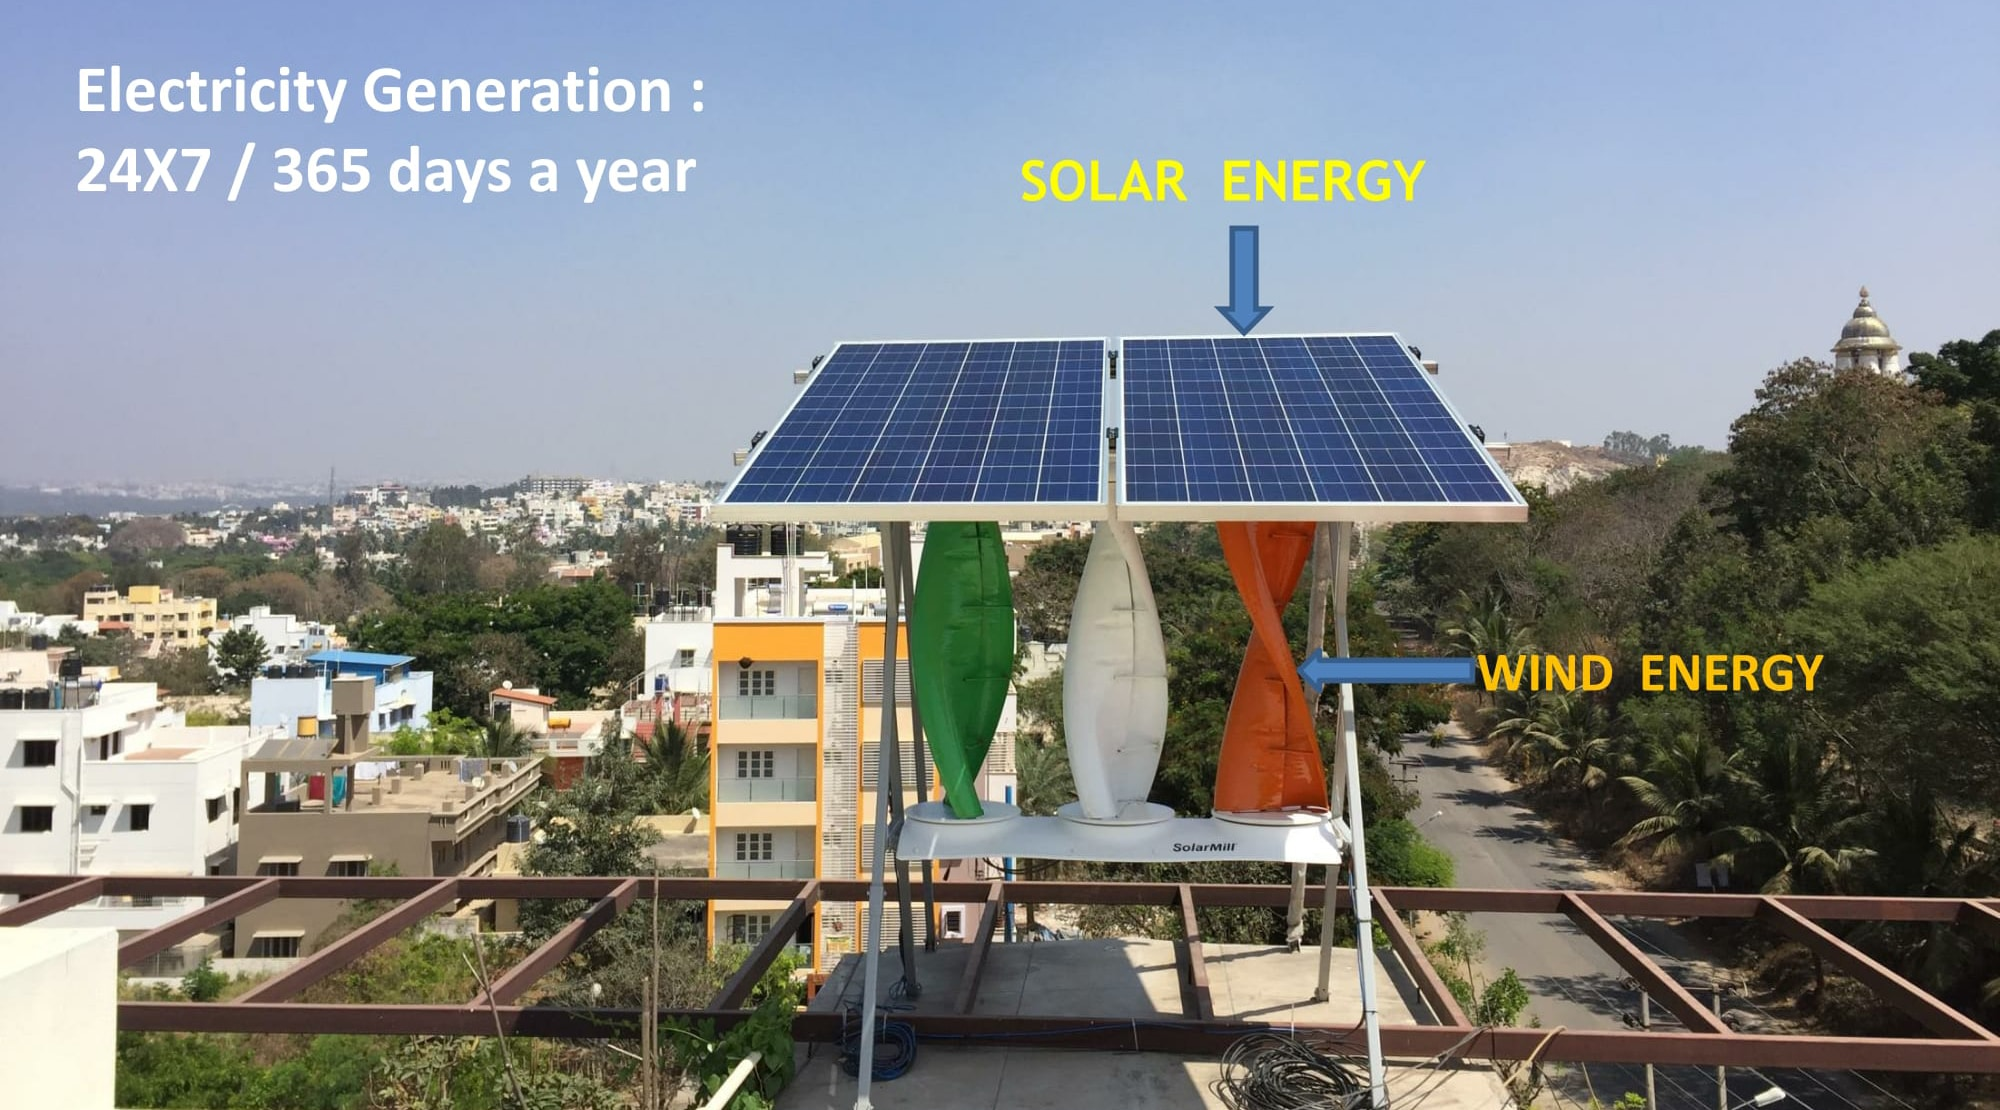 Lavancha Renewable Energy Presentation_SOLAR and WIND